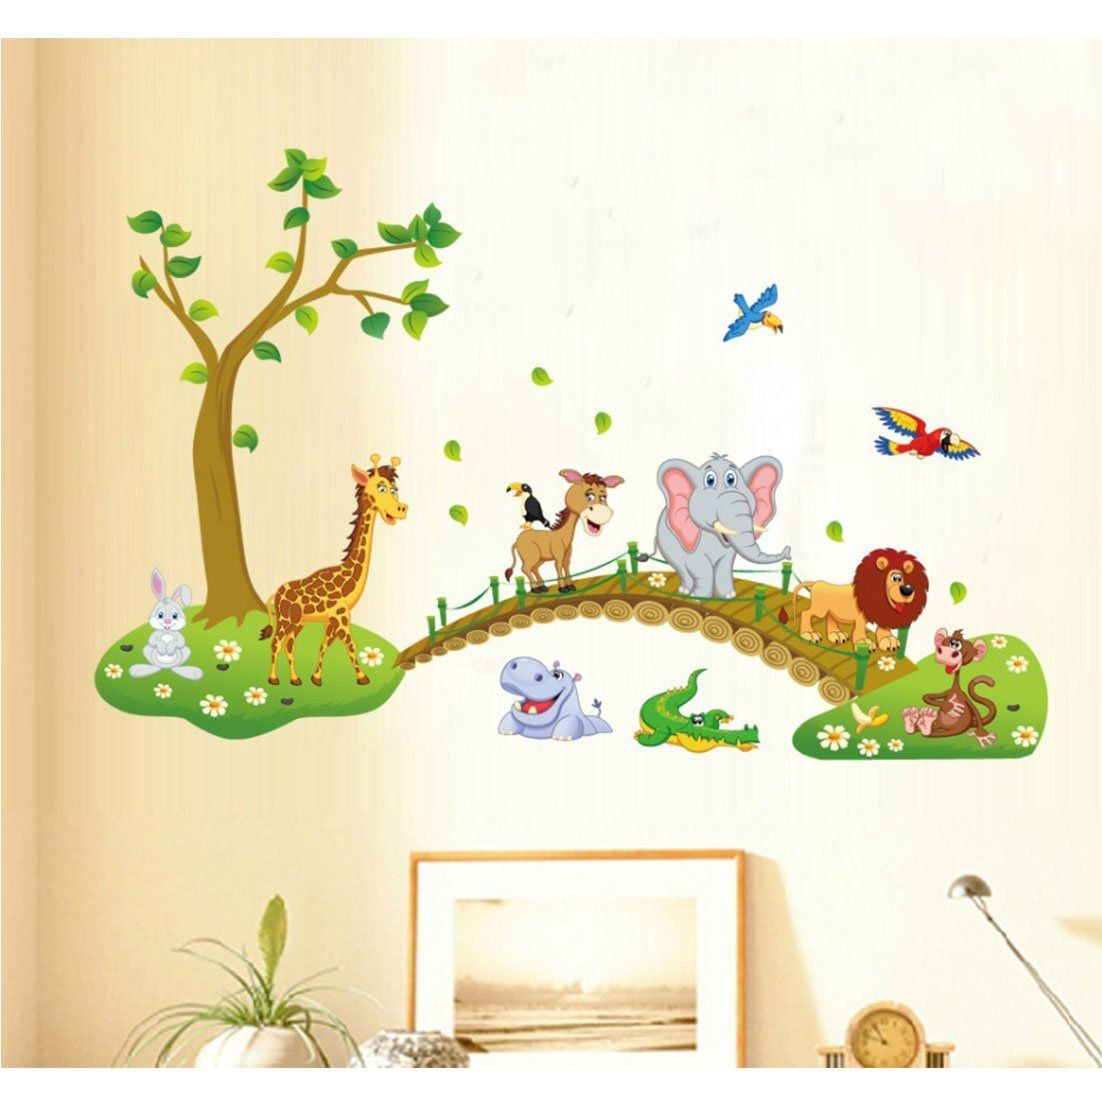 2019 Wall Decal for Baby Room - Wall Art Ideas for Bedroom Check ...